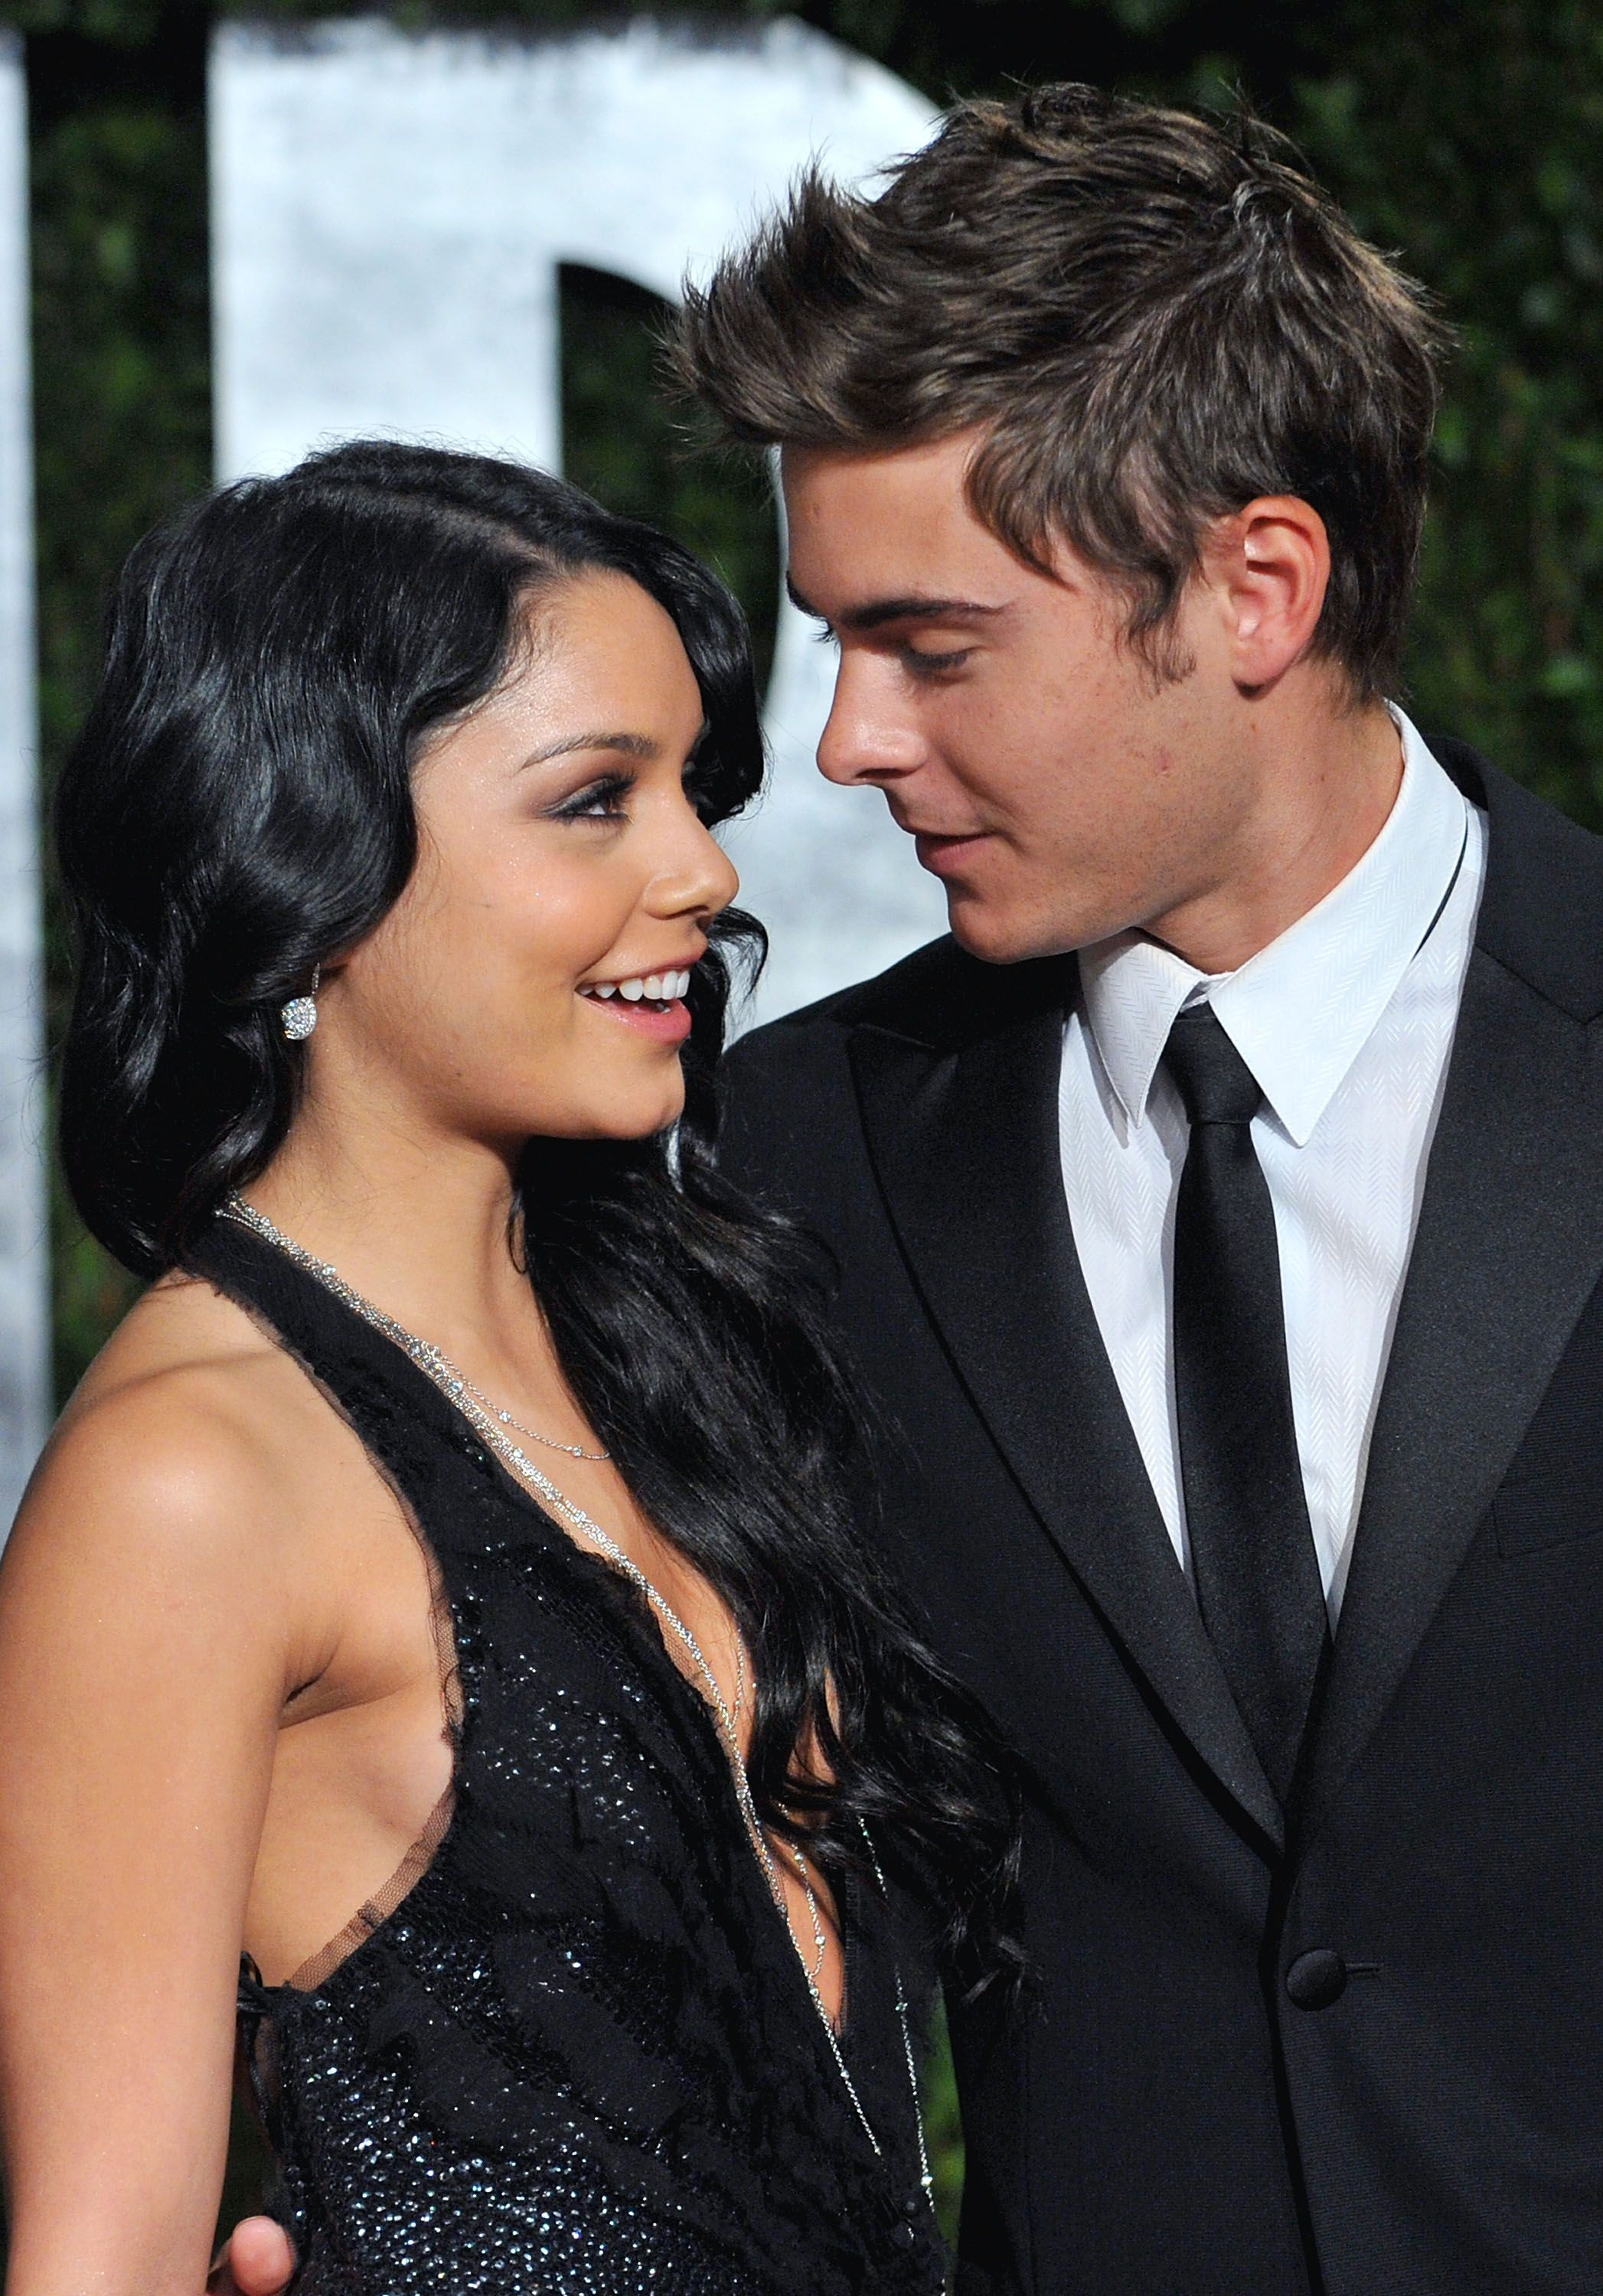 Zac And Vanessa, Demi And Joe, And More Couples We Loved